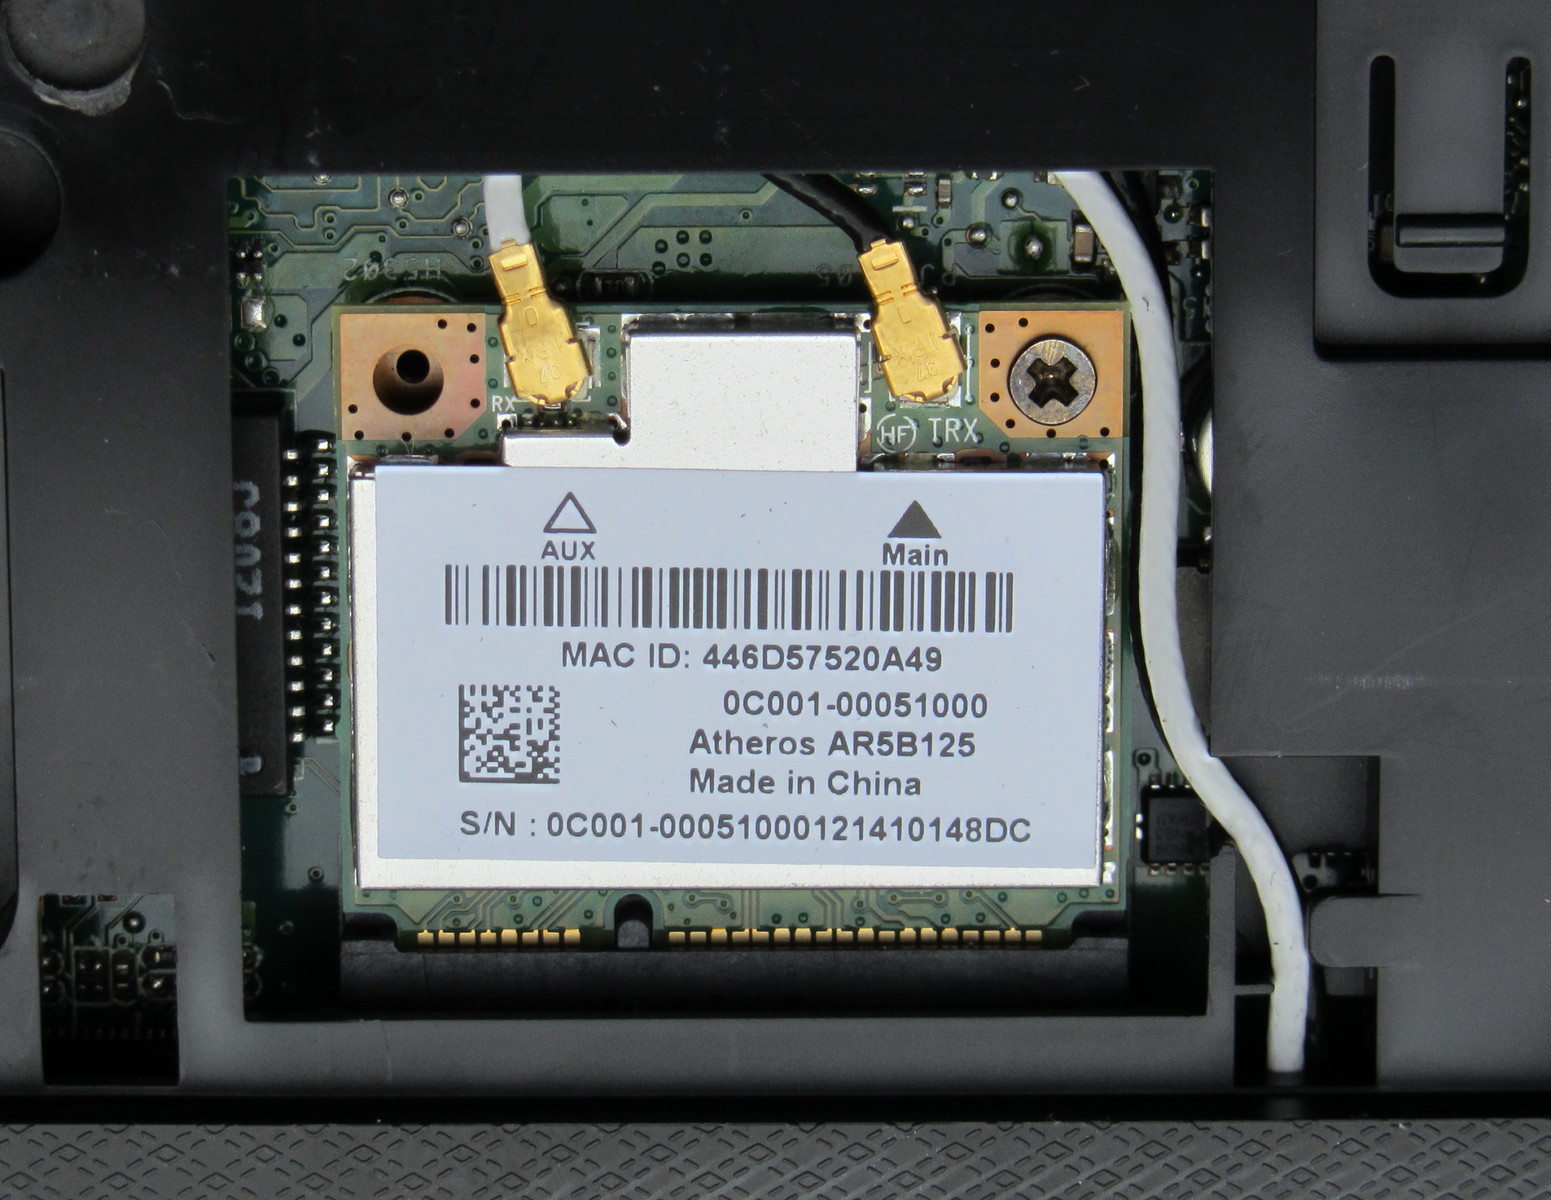 Qualcomm Atheros Qca9377 Wireless Network Adapter Windows 7